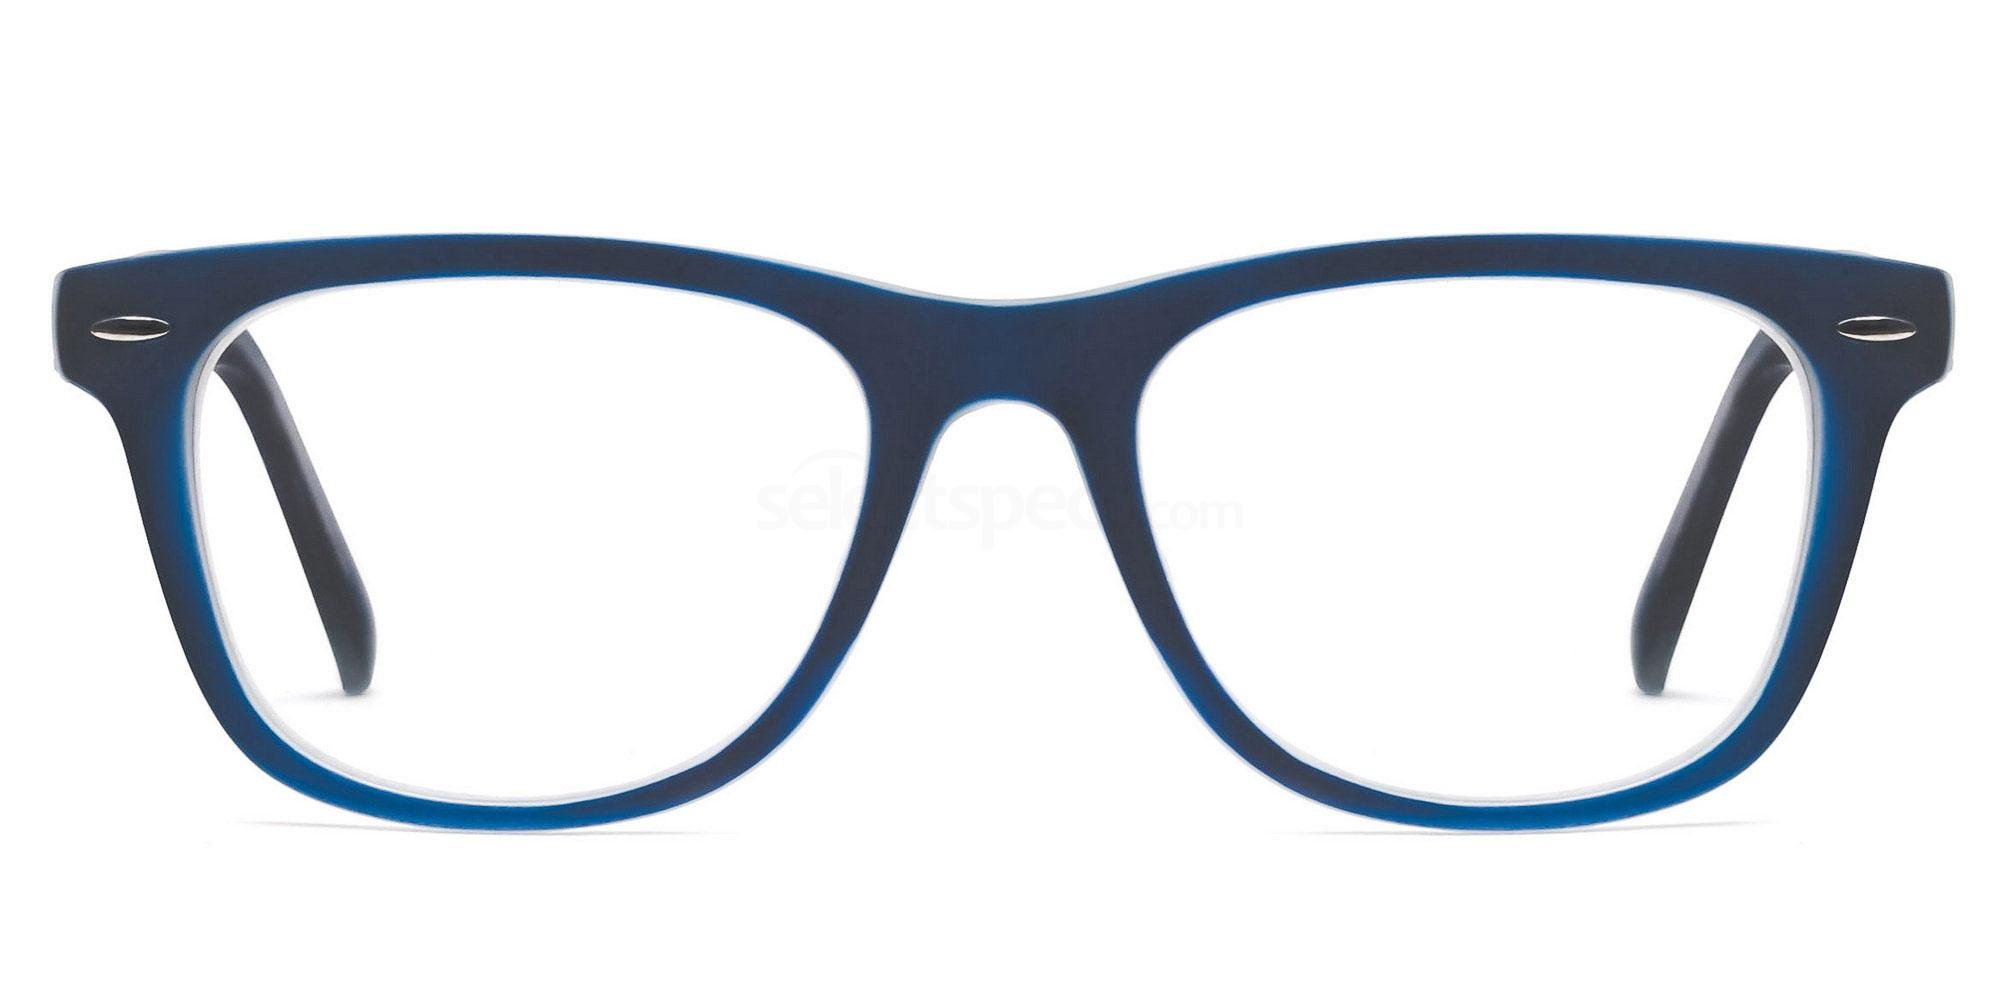 C14 8121 - Navy on Transparent Glasses, Savannah